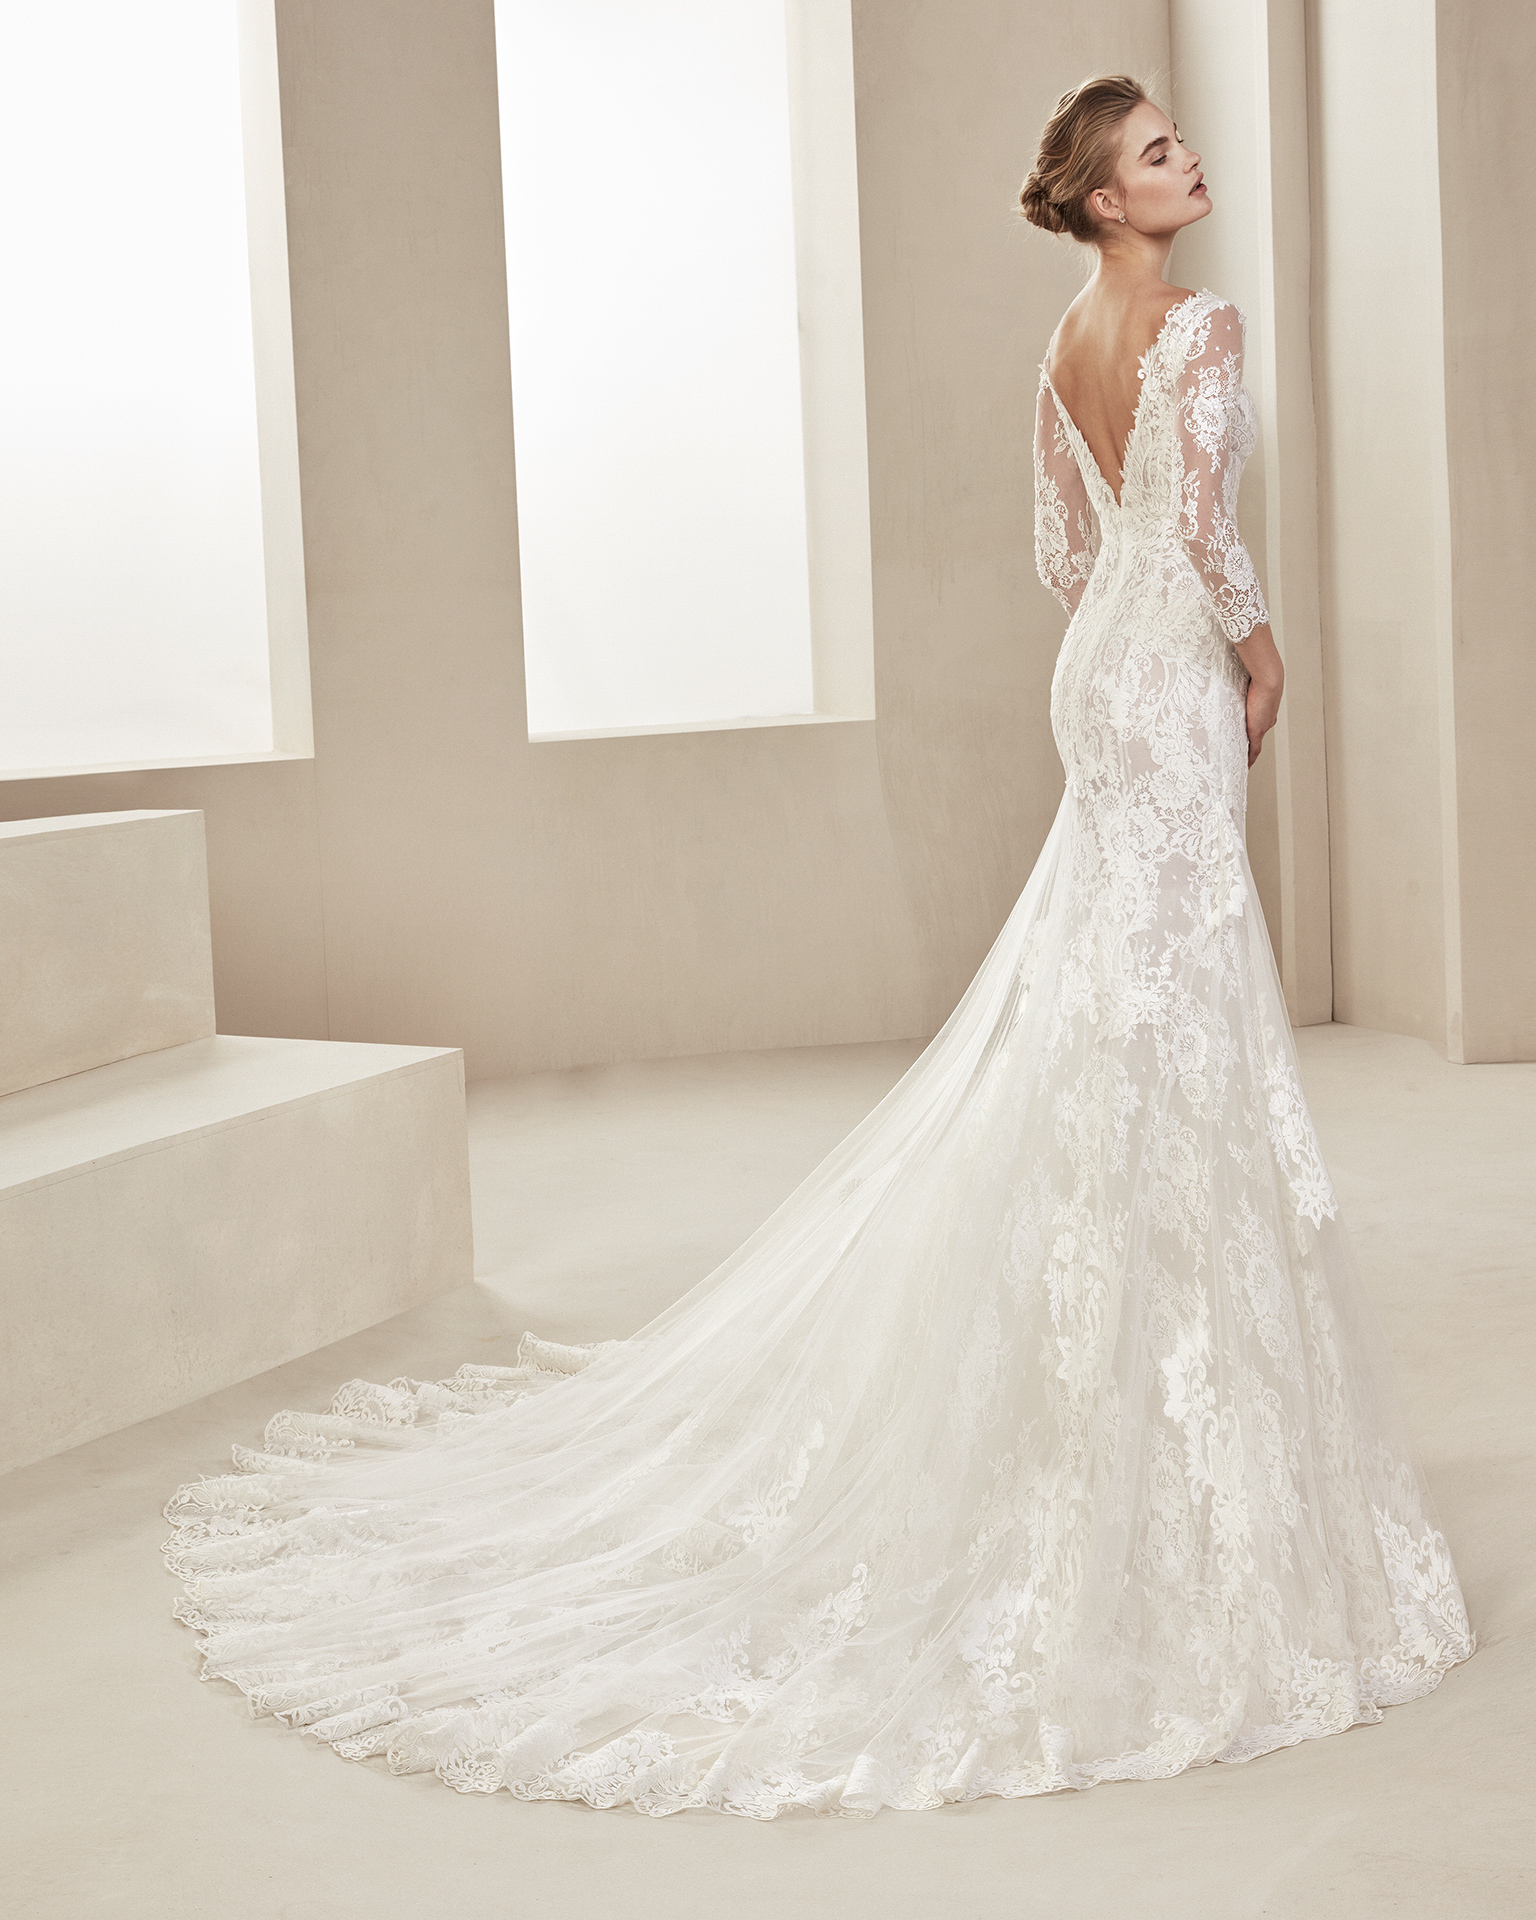 Mermaid-style lace wedding dress. With V-neckline, low back and long sleeves. Available in natural. 2019 ALMA_NOVIA Collection.